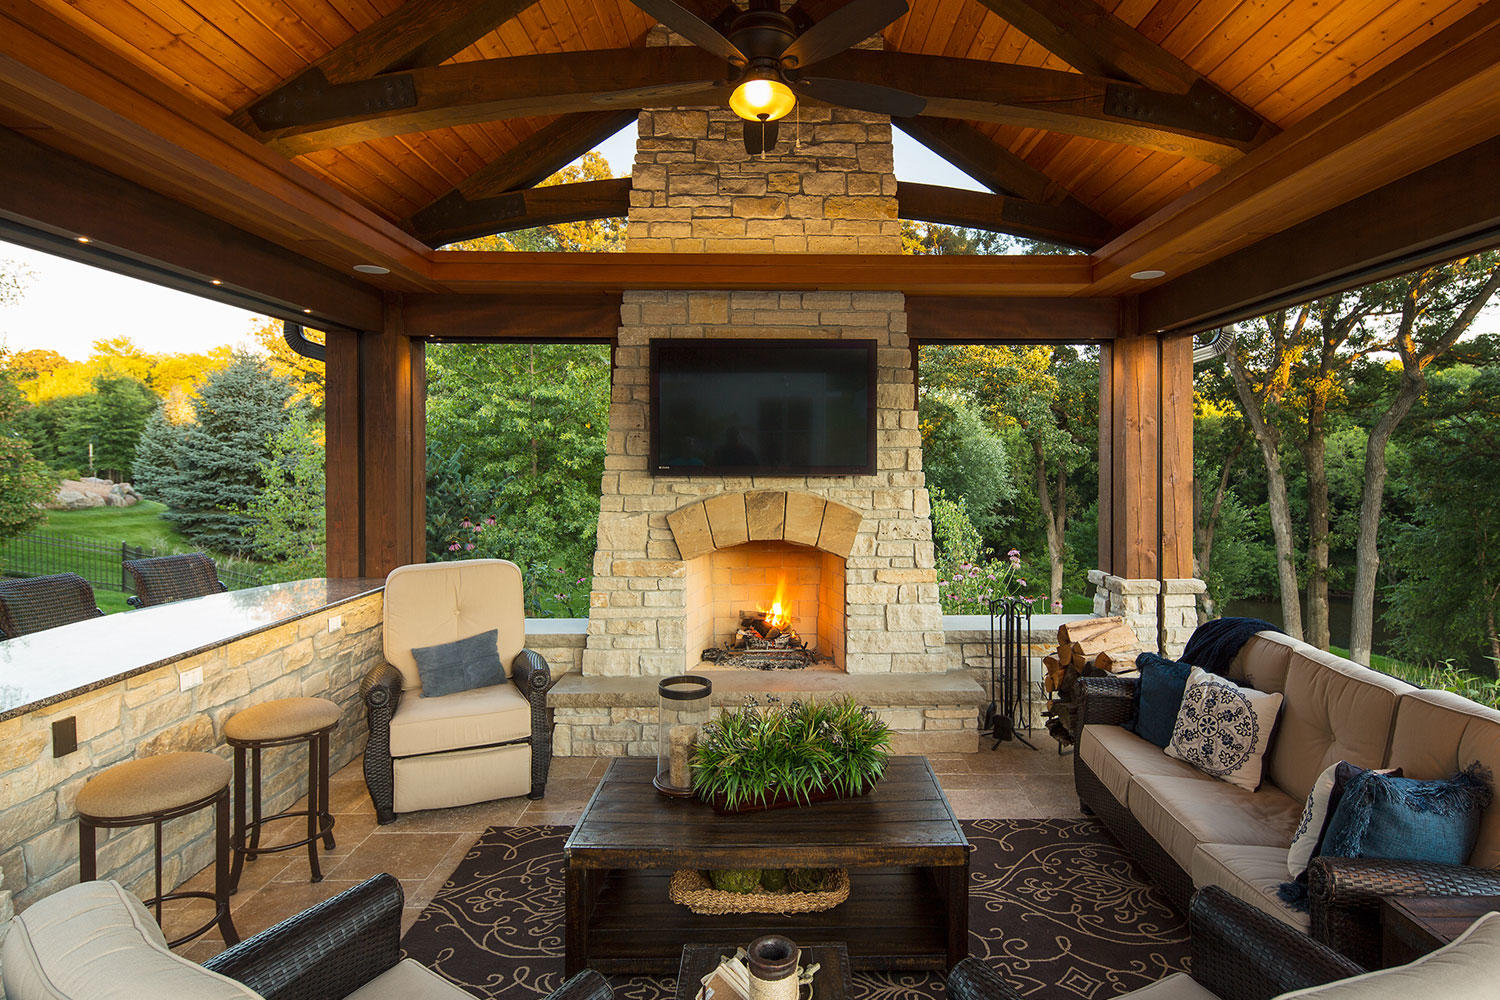 Outdoor Living Rooms Minneapolis & St. Paul | Southview Design on Garden Houses Outdoor Living id=46300